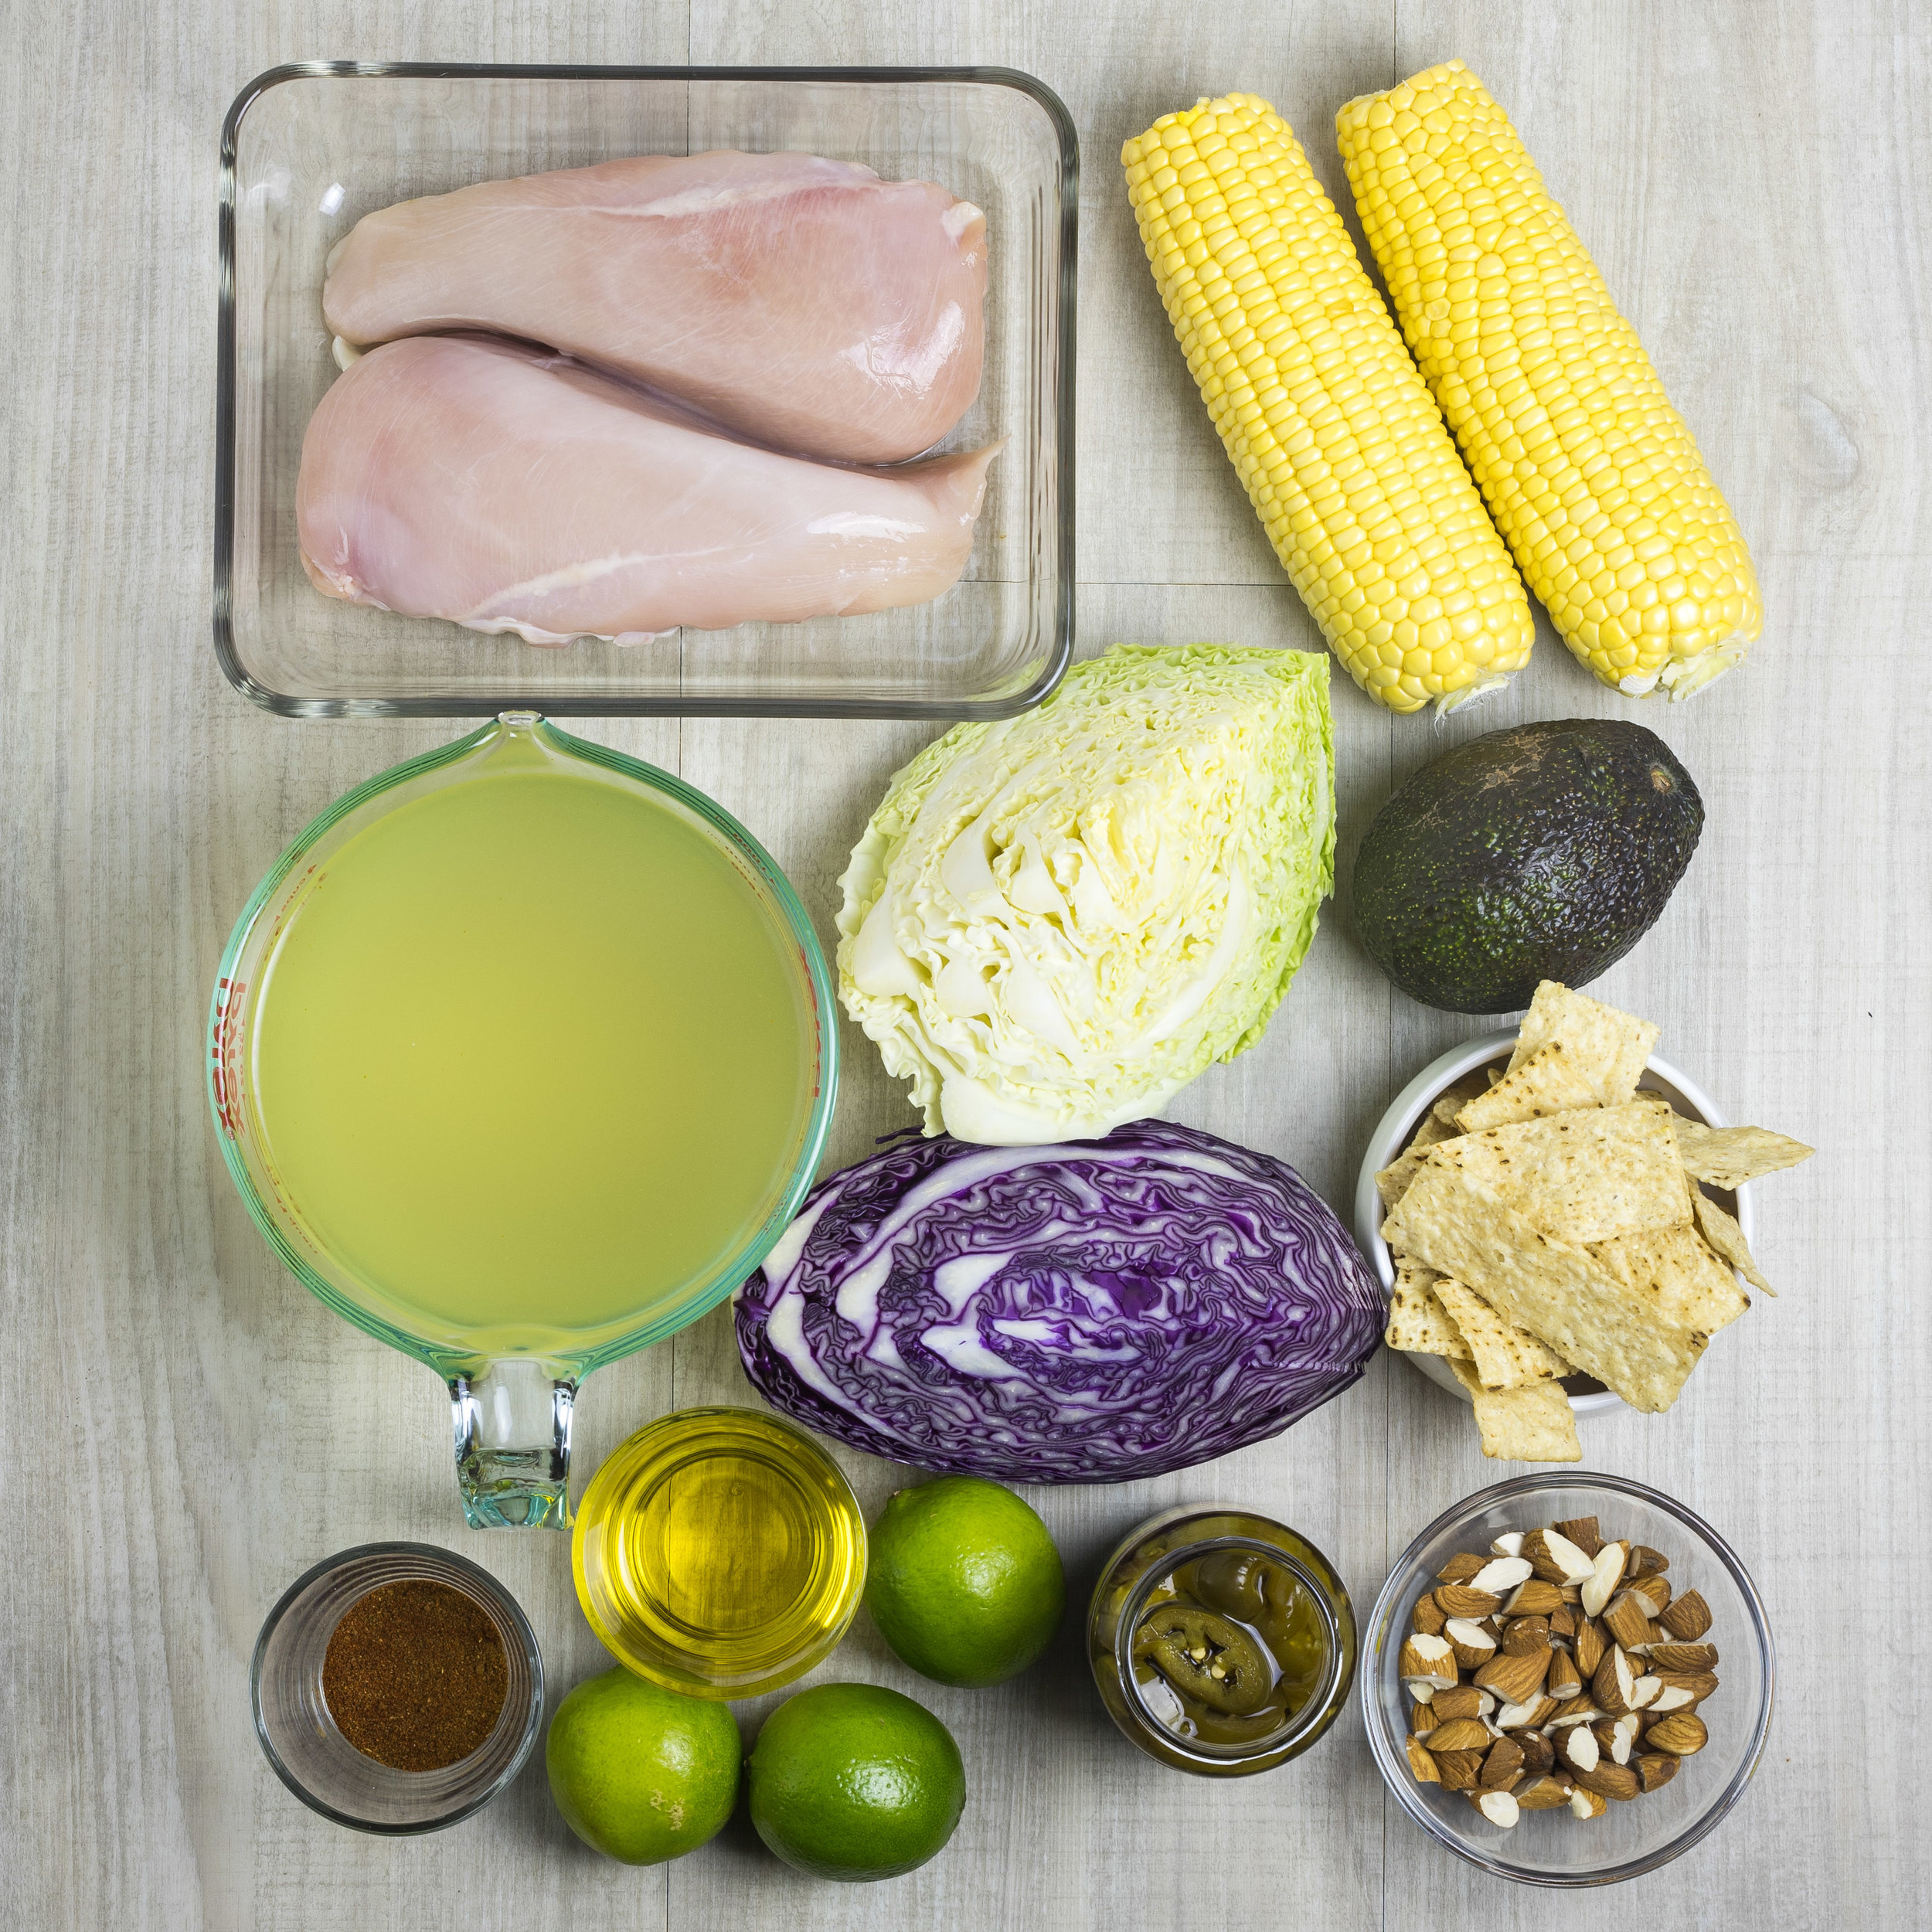 Ingredients laid out in dishes, ready to make Mexican poached chicken salad.